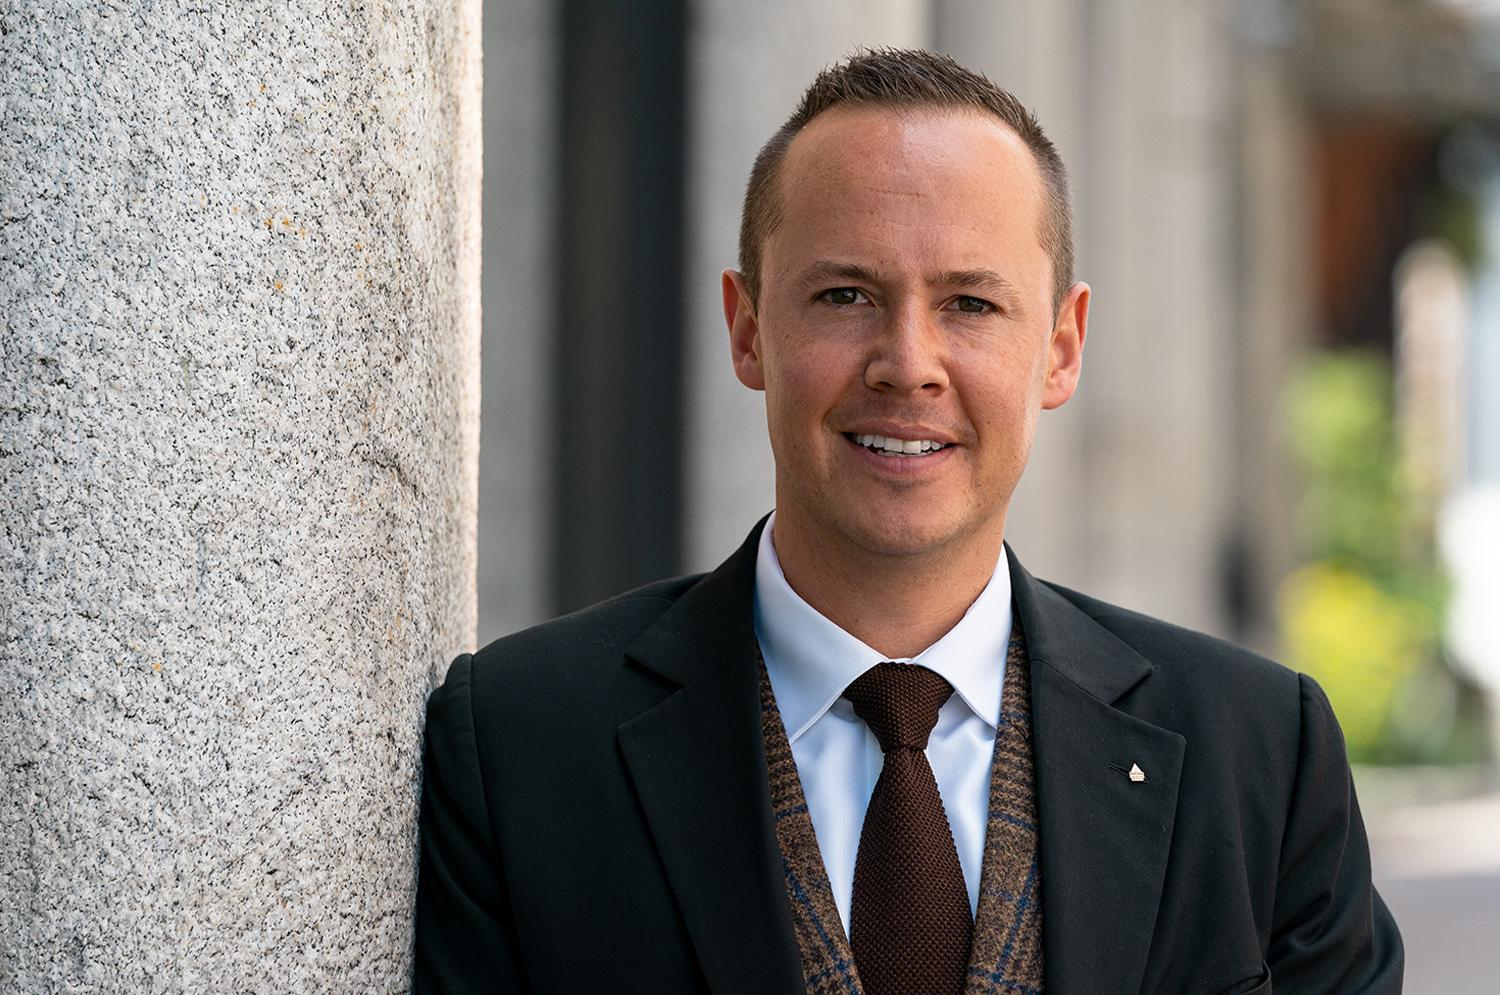 Danilo Huss, Director of Sales, Badrutt's Palace Hotel